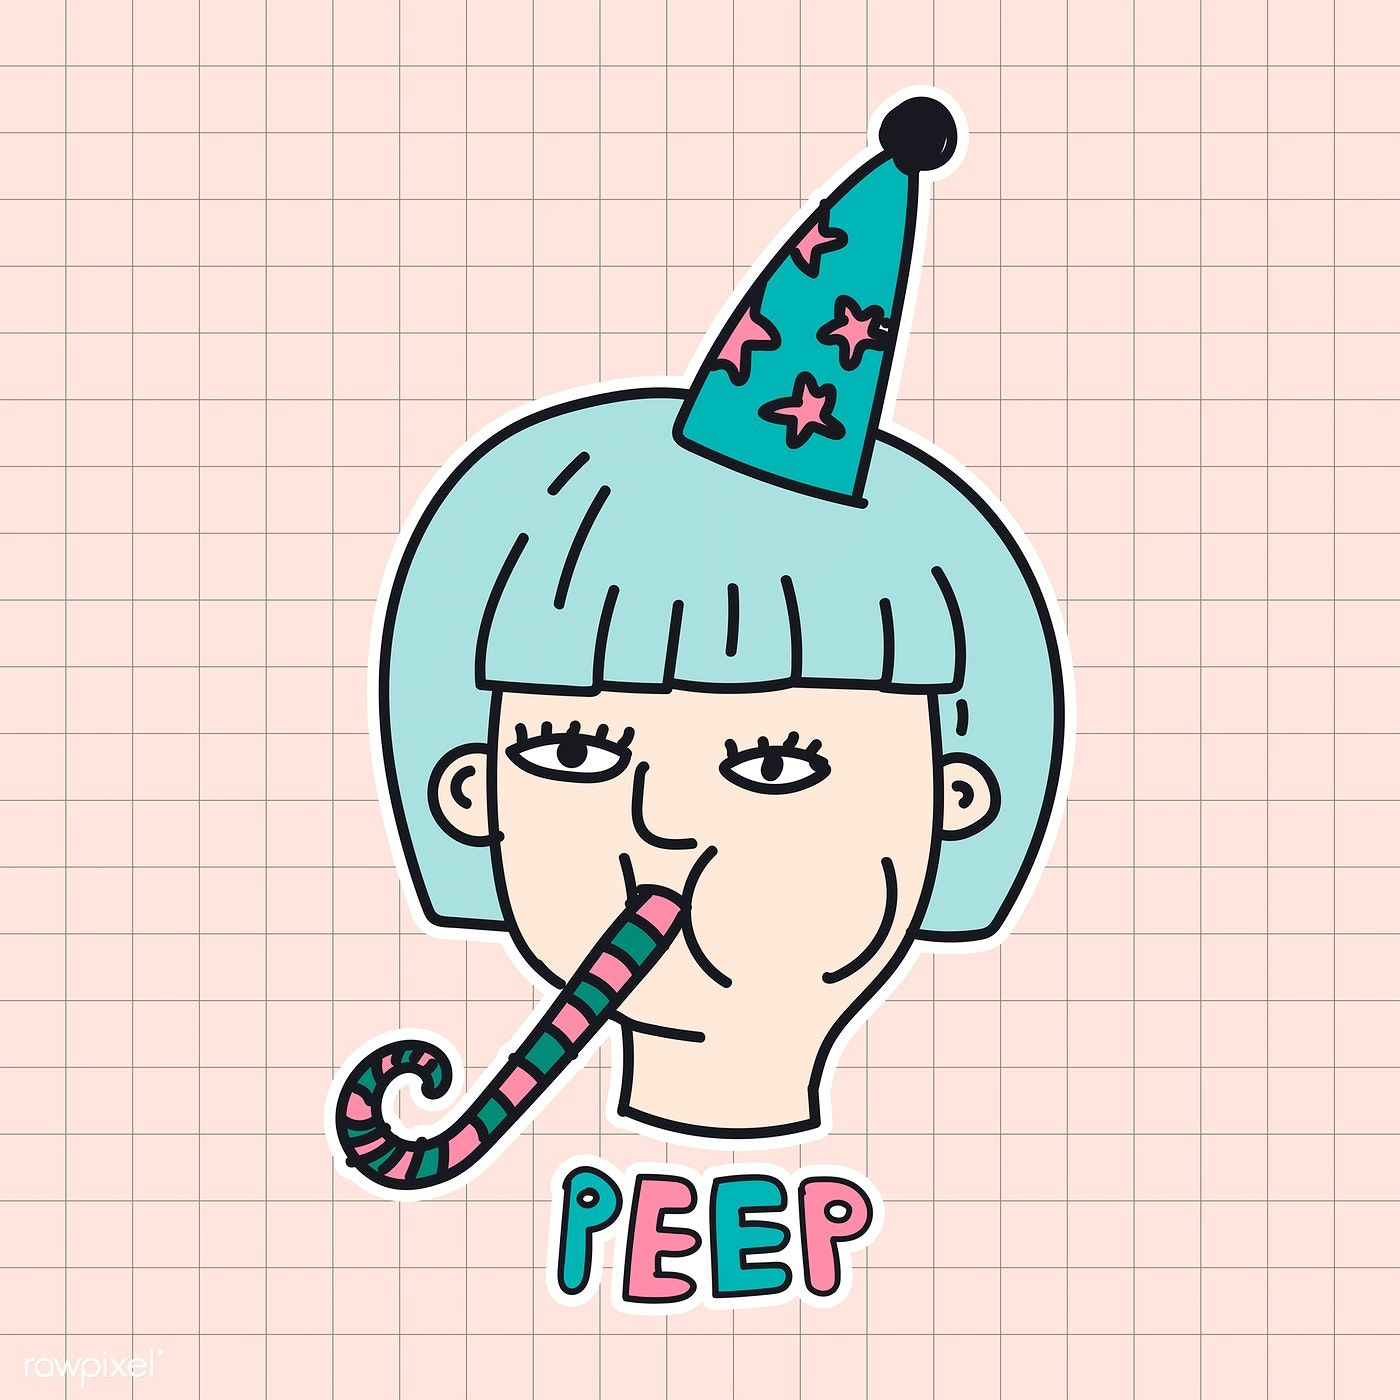 Download Premium Illustration Of Hand Drawn Woman With A Party Blower Party Blowers Seasons Greetings Card New Year Card Design